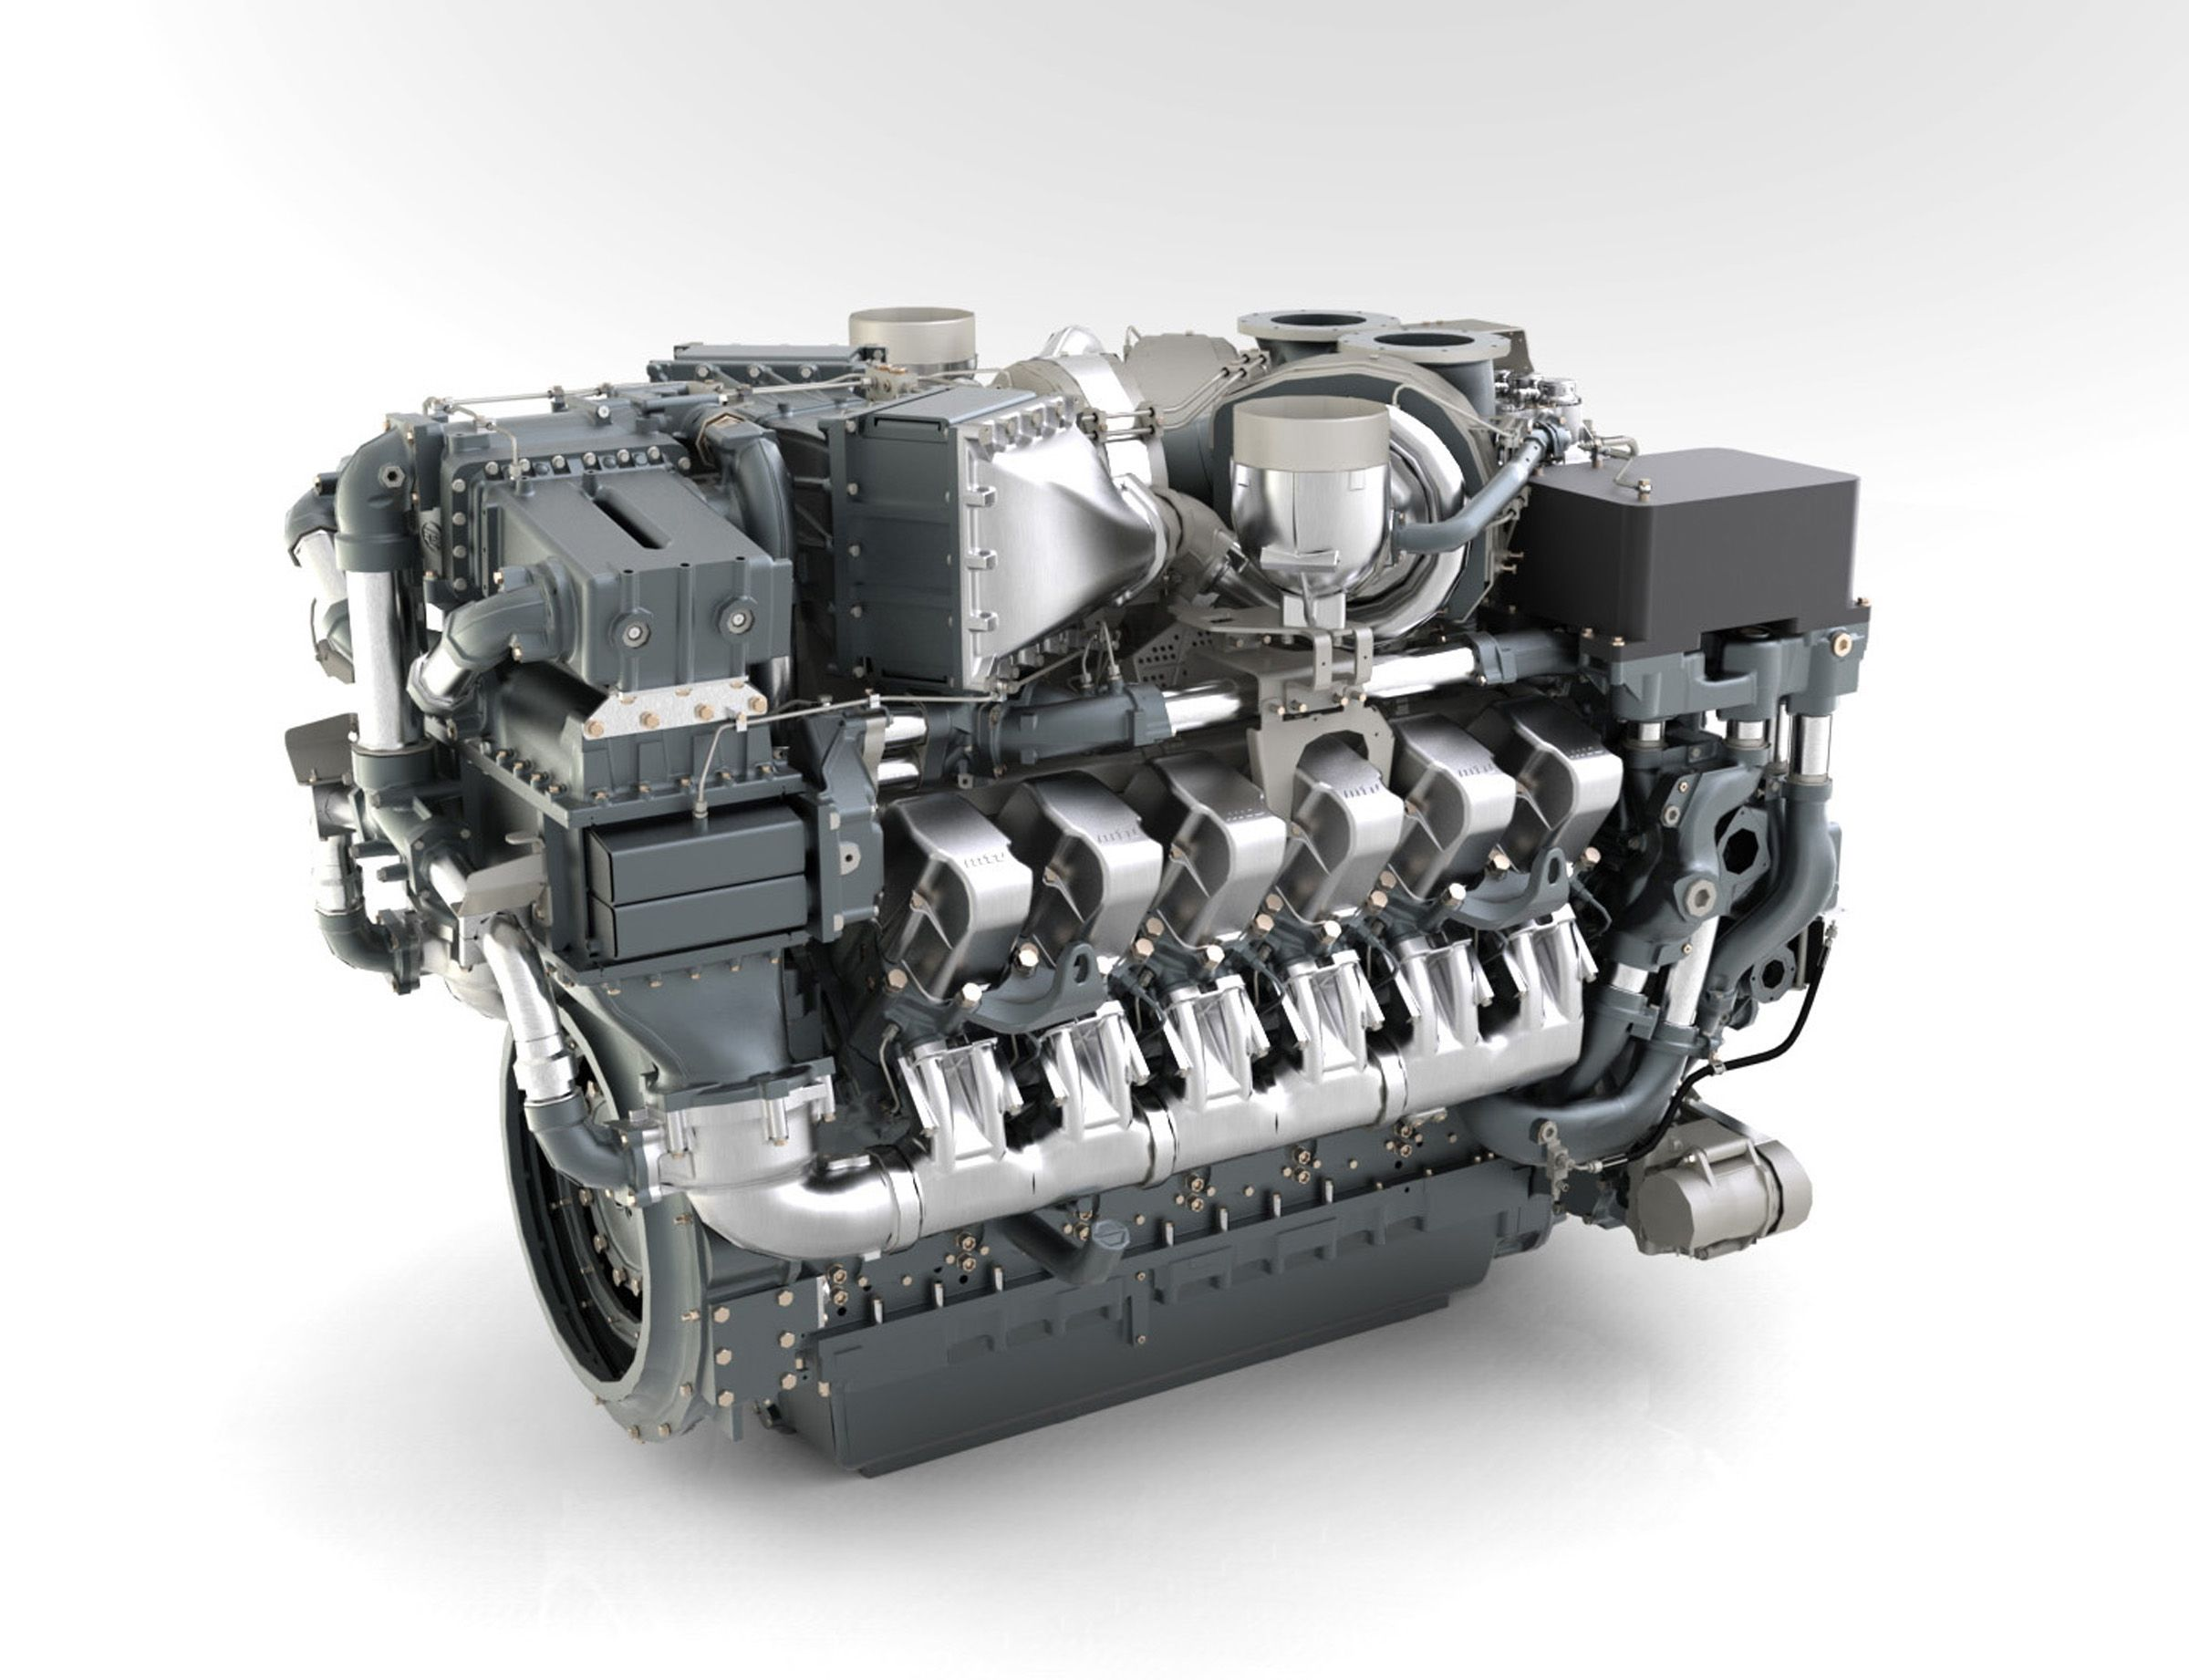 mtu 4000 series engine specifications | mtupartssuppliers